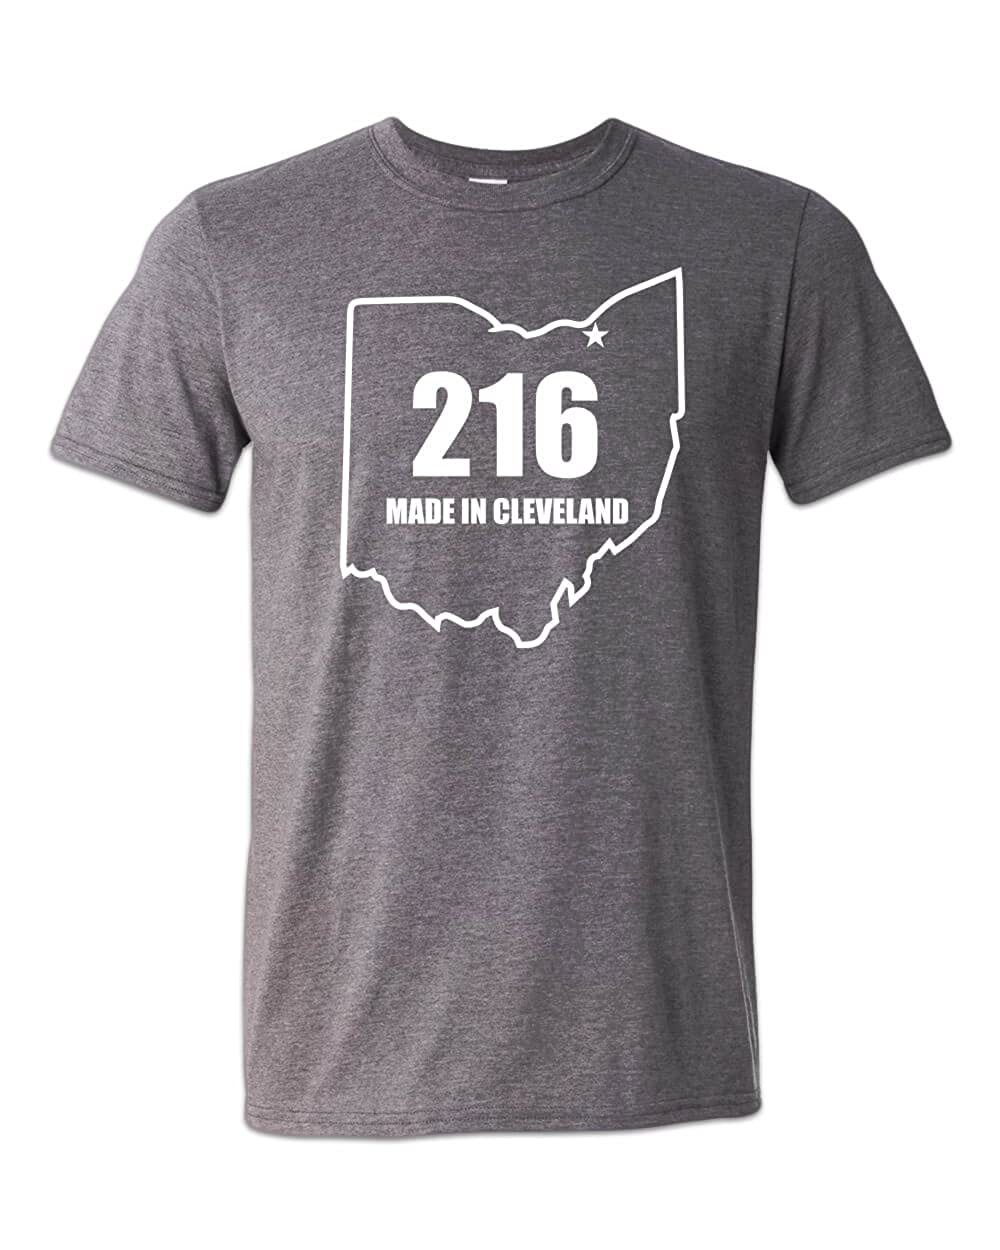 ea2f4f2b067a Zepp Tees 216 Made in Cleveland T-Shirt Ohio Pride Believeland The Land    Amazon.com